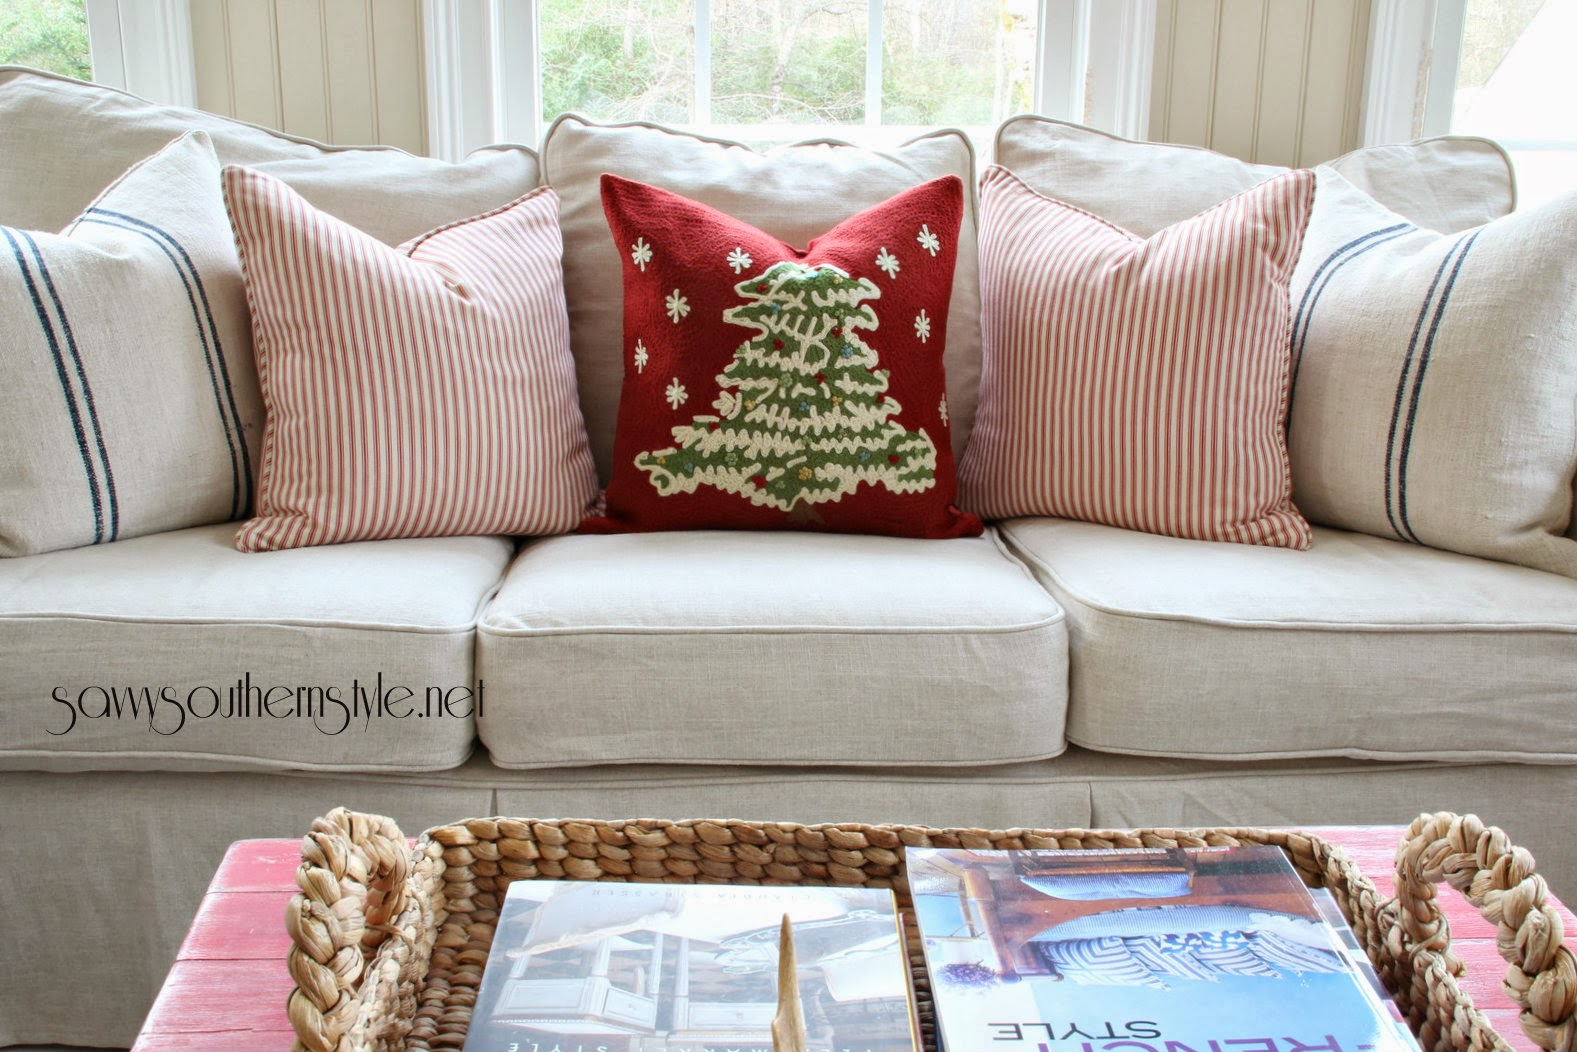 pottery barn leather sofa cleaning red blue curtains savvy southern style a new slipcover in the sunroom